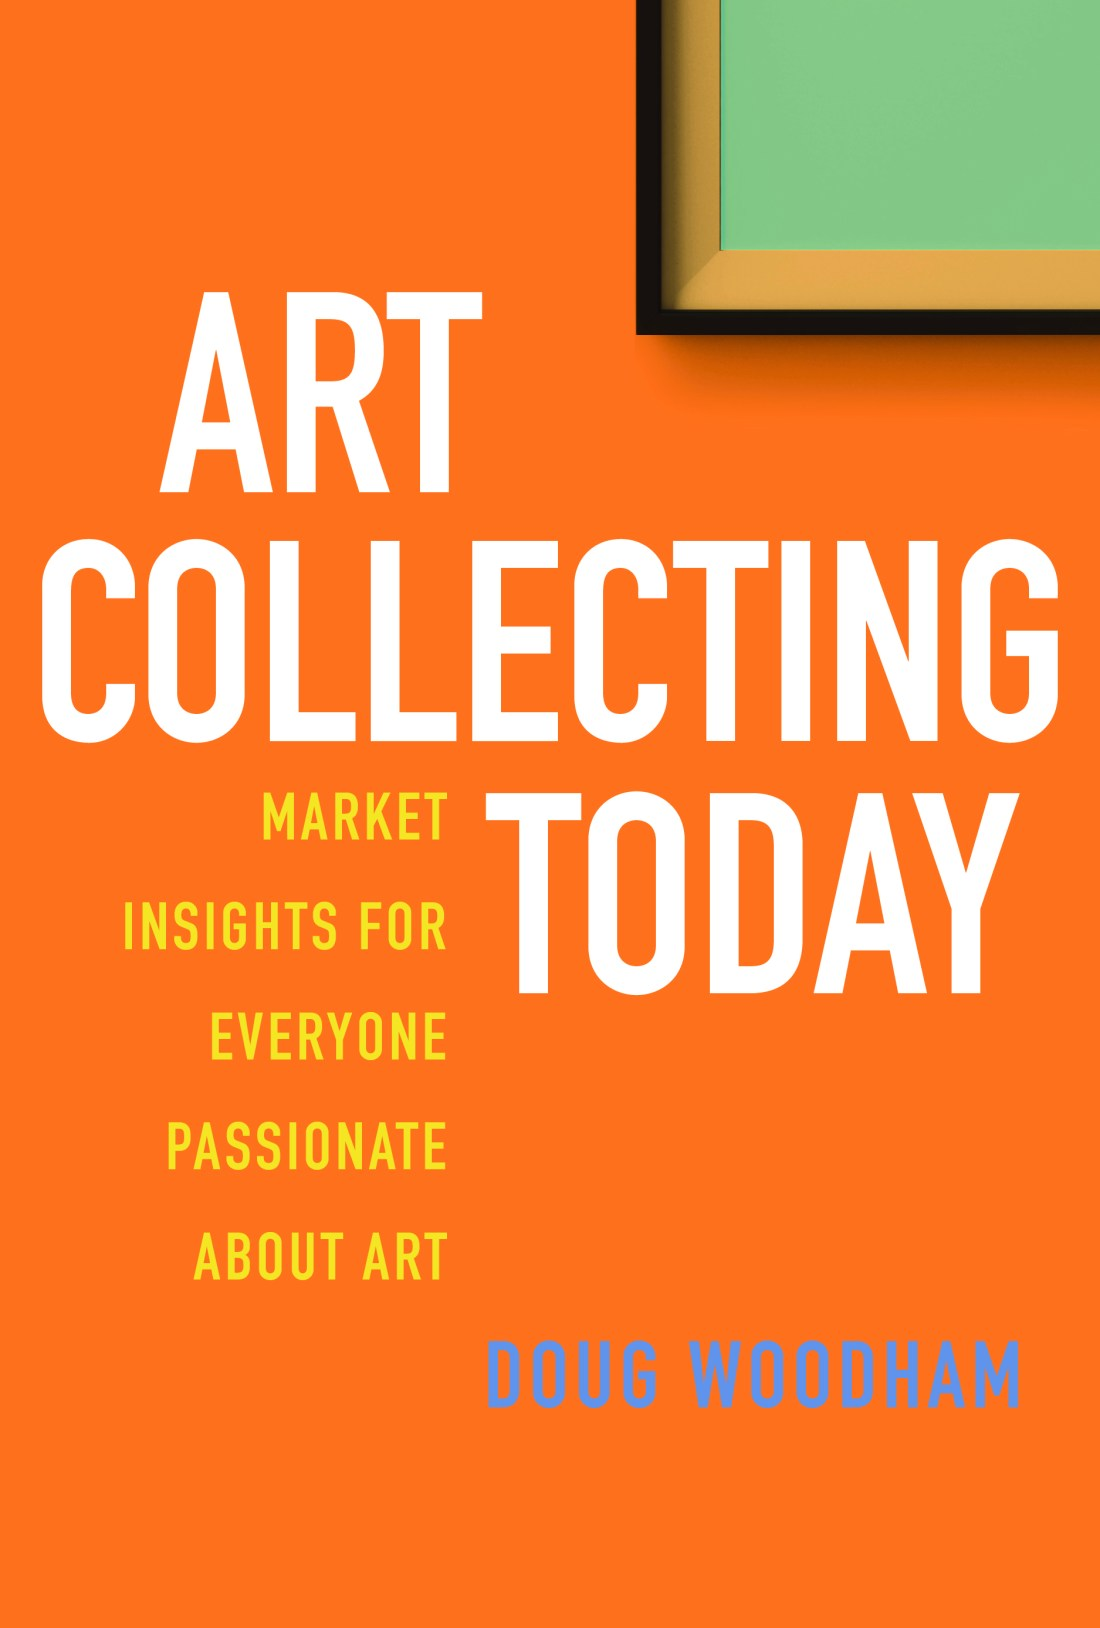 The cover of Doug Woodham's book Art Collecting Today: Market Insights for Everyone Passionate About Art is orange with a nondescript painting at the upper right.